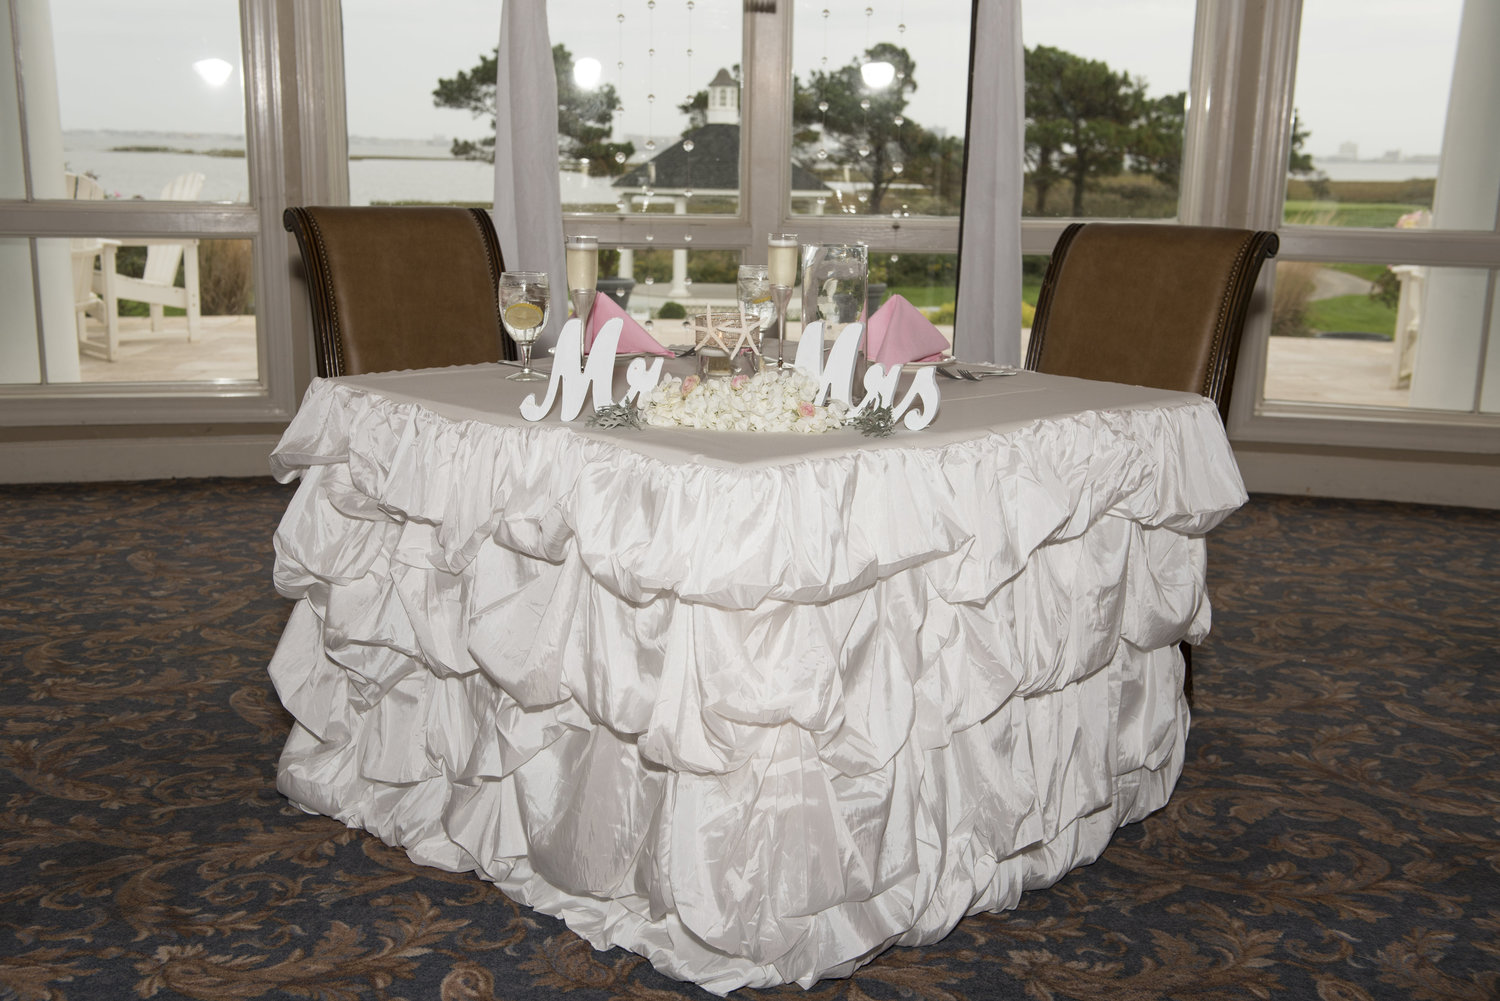 Tristan+Sarah+are+Married-Reception-0070.jpg